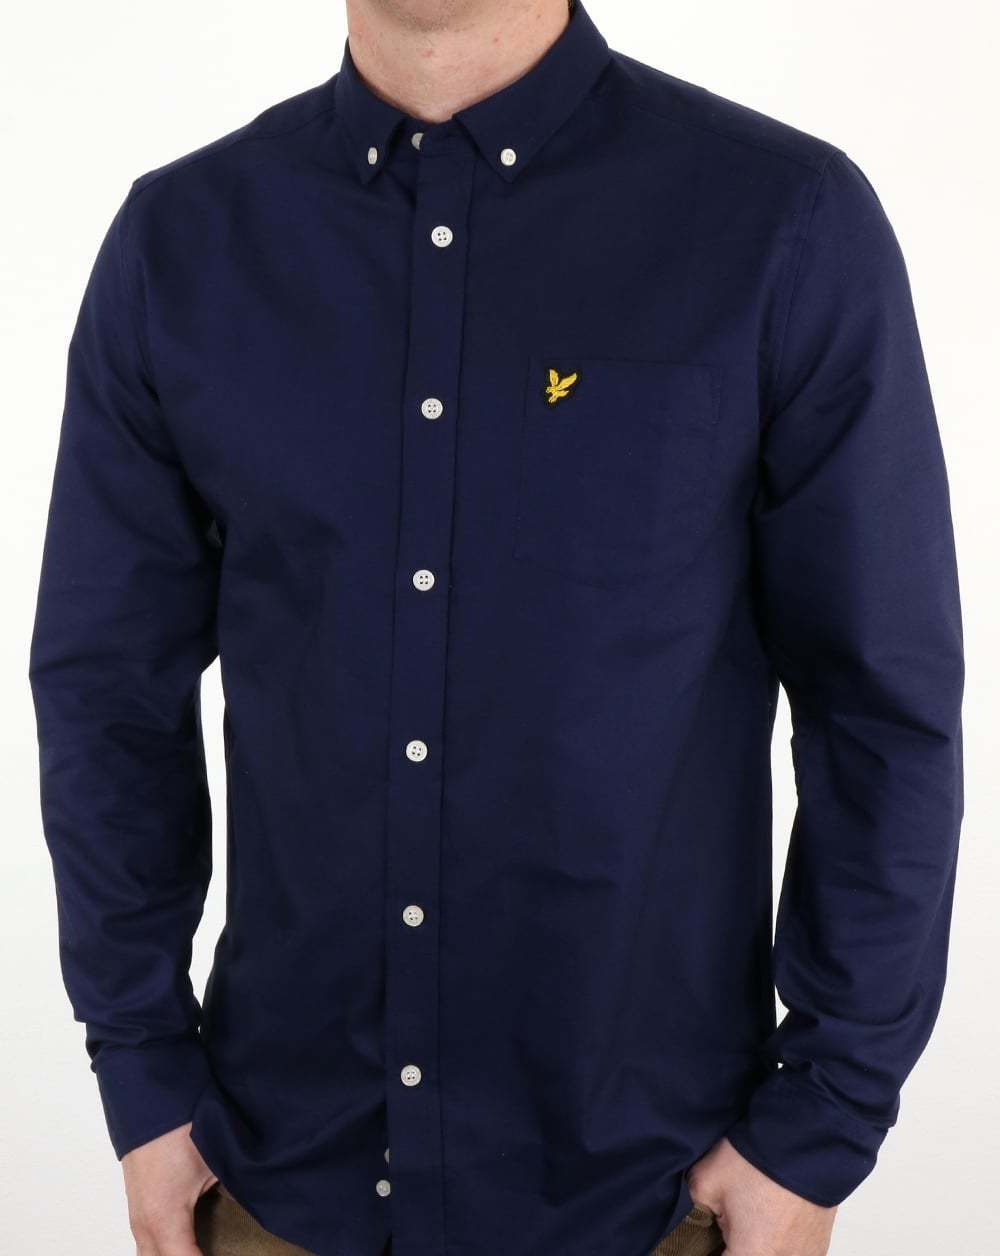 Lyle and Scott Oxford Shirt in Navy bluee - cotton long sleeve button down casual